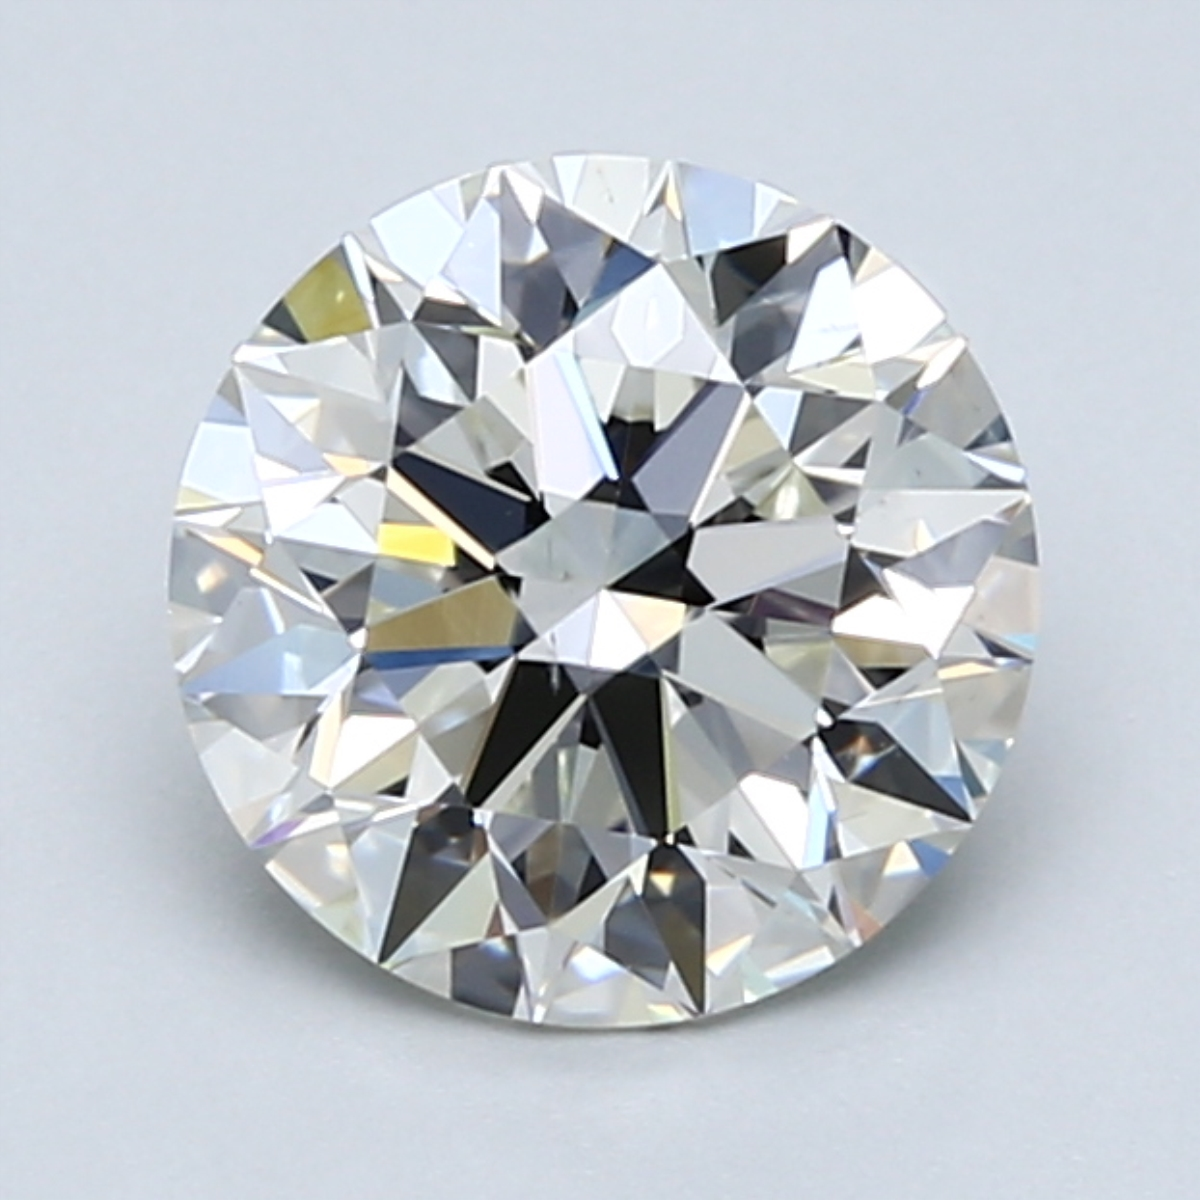 1.90 carat Round Diamond, Ideal cut, graded by the GIA laboratories.